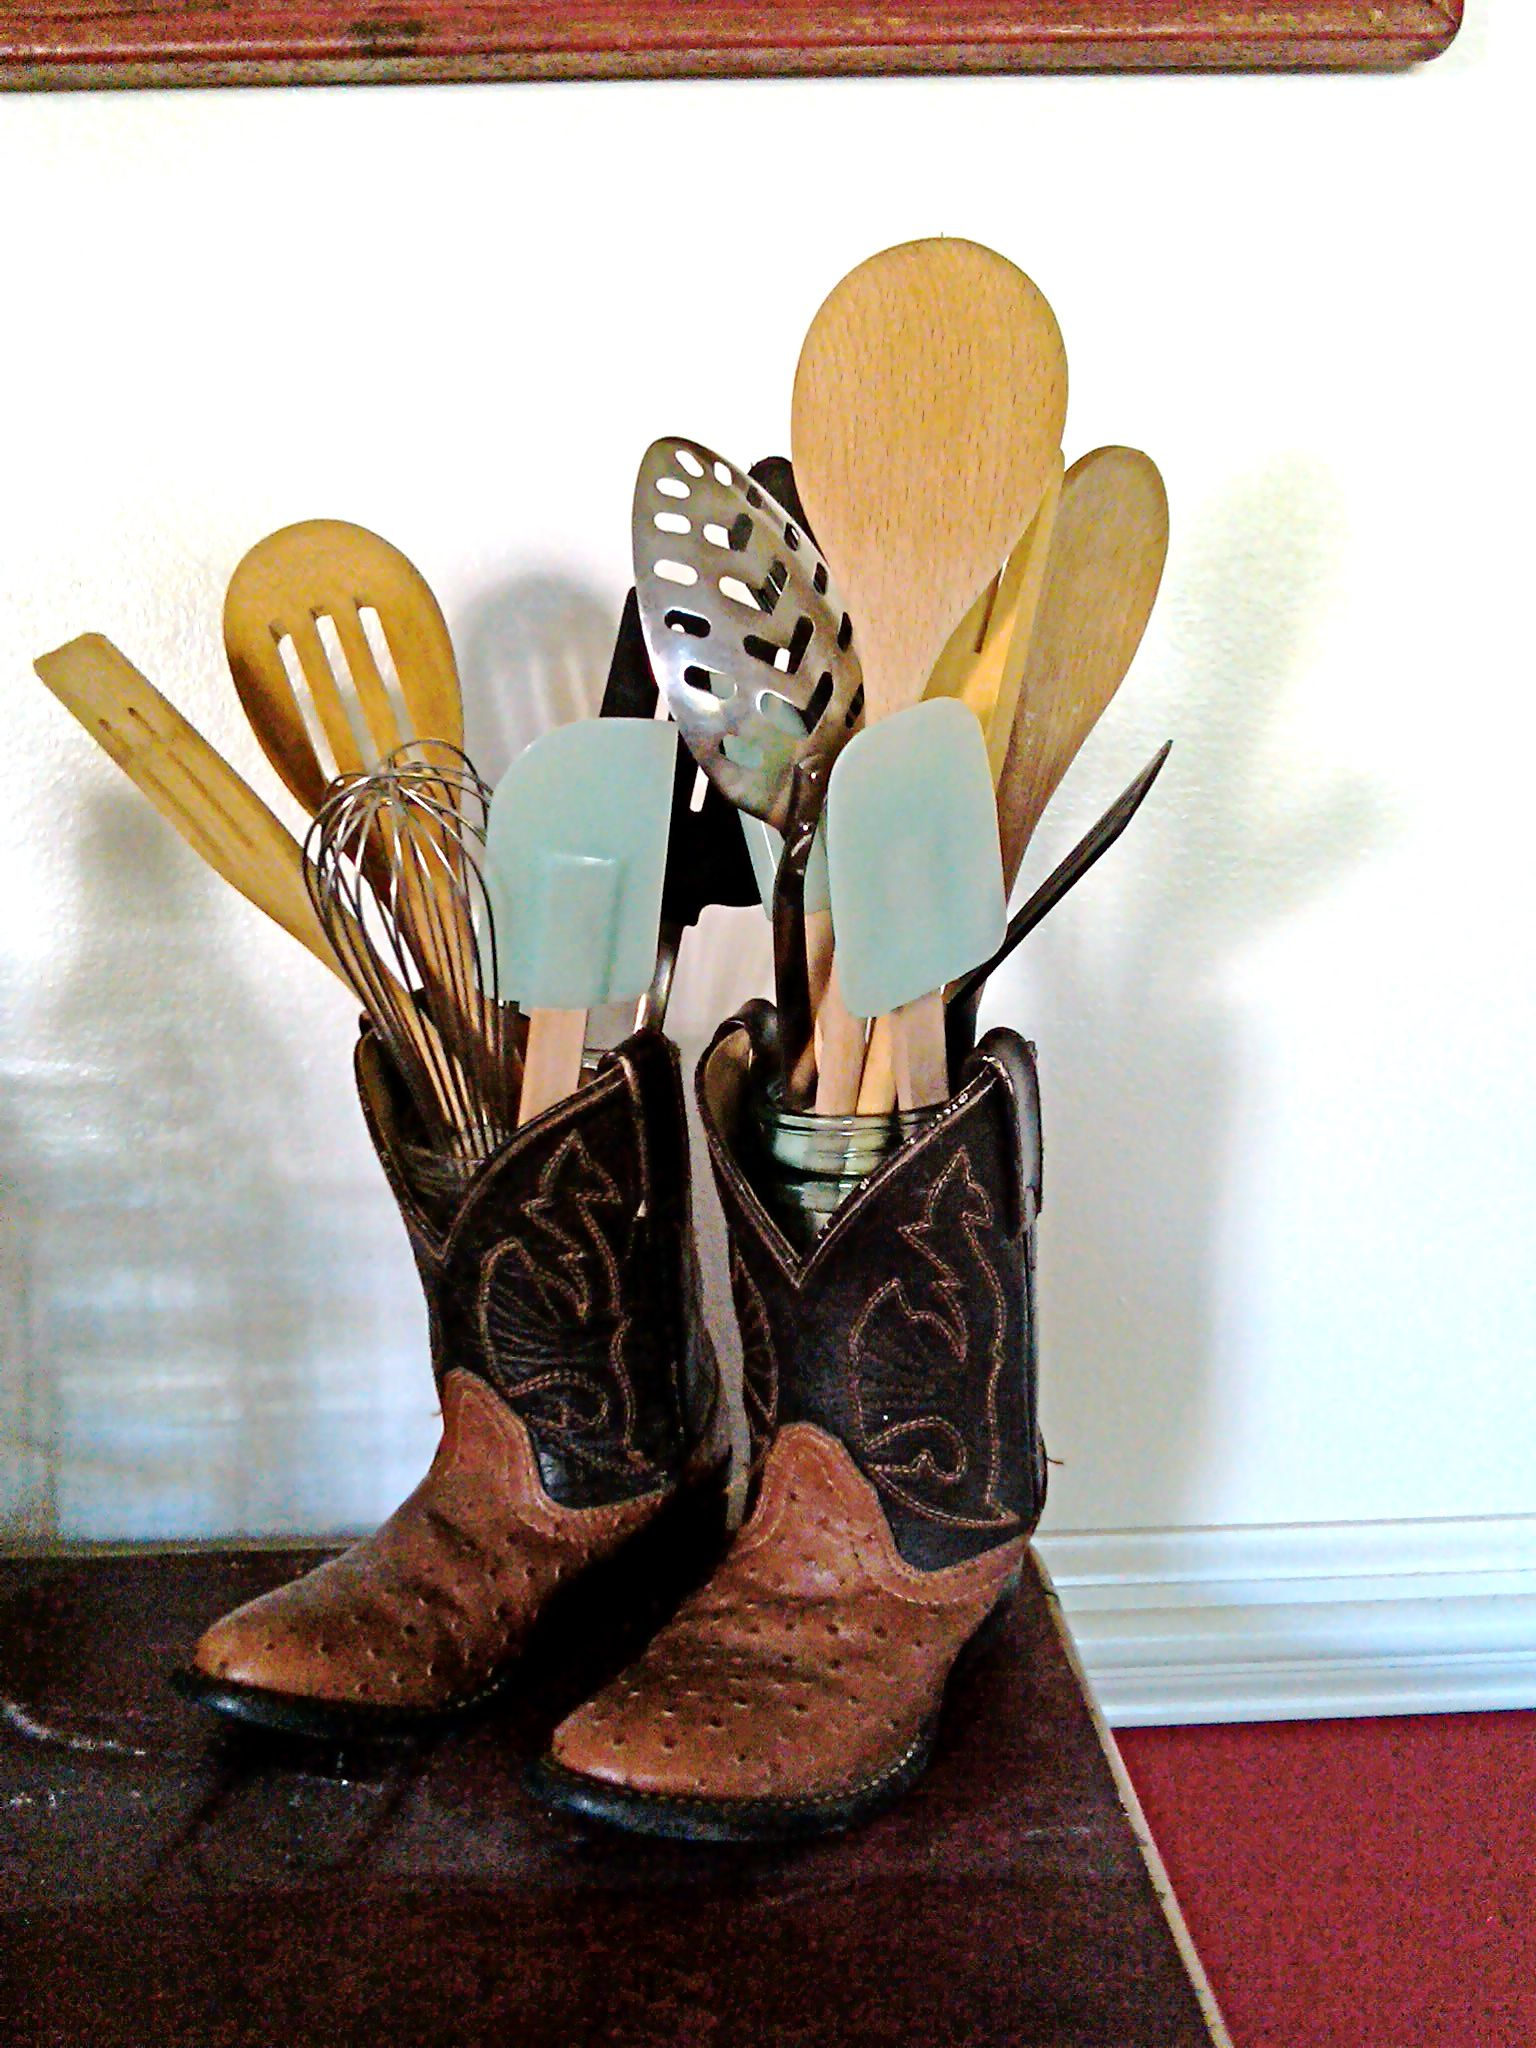 Outgrown little guy cowboy boots - place small Ball jar inside and create a new kitchen utensil holder - toss the crock!